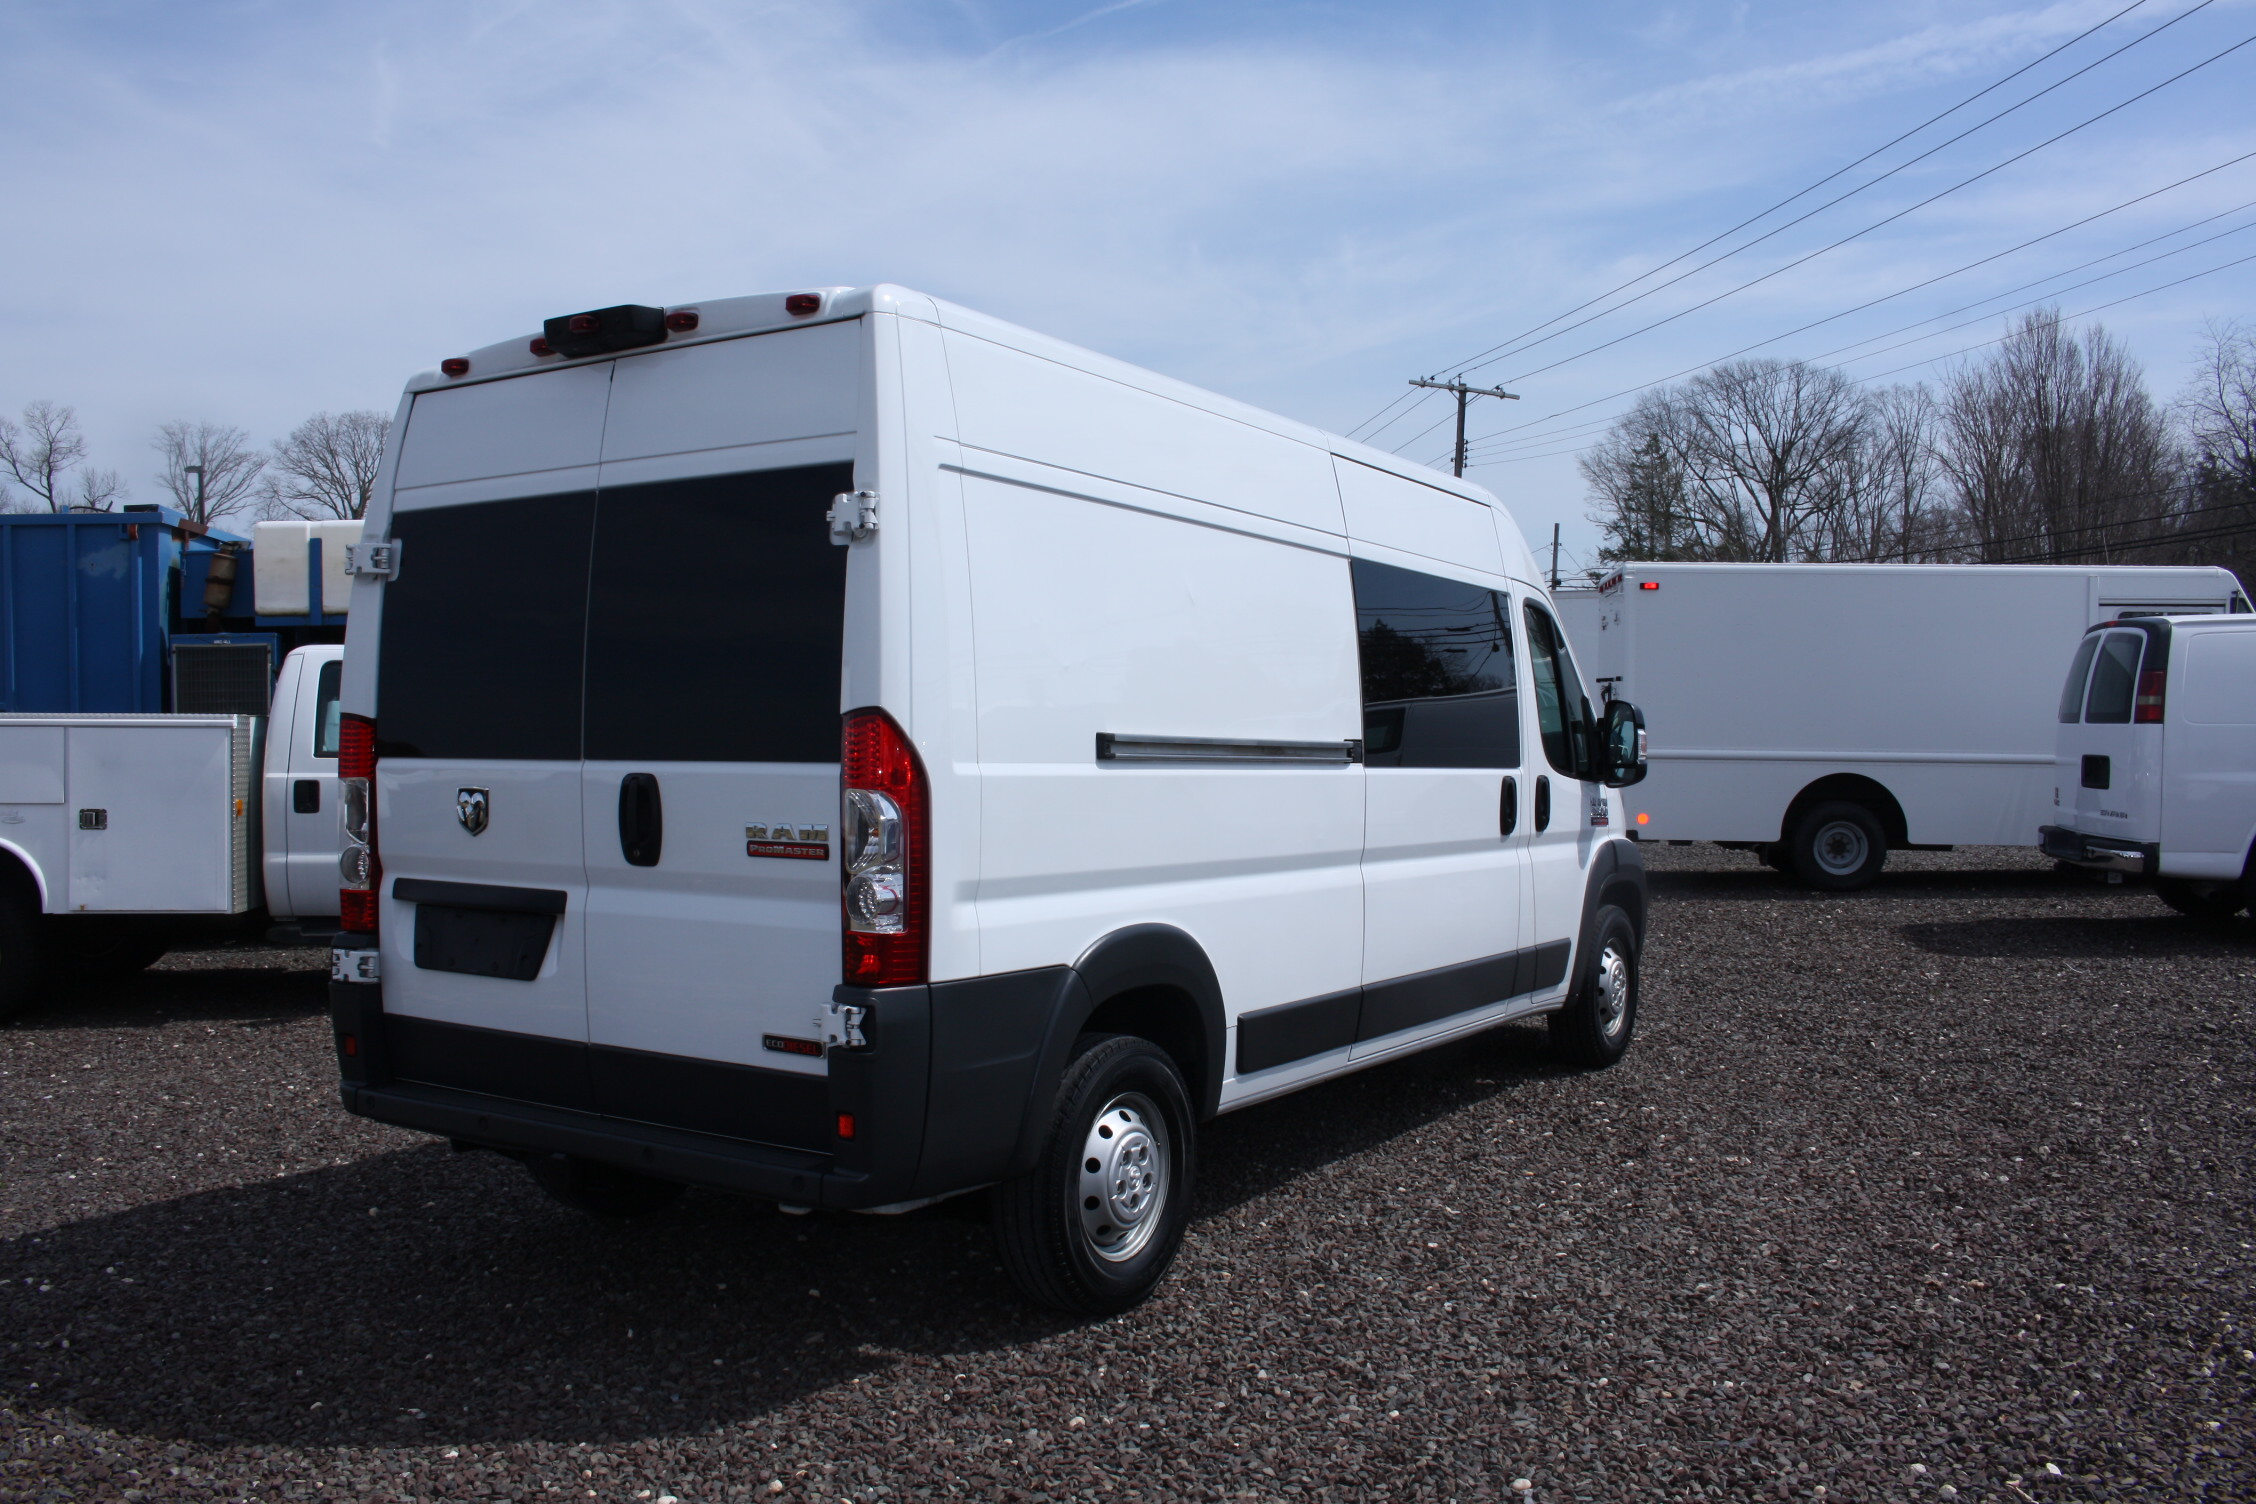 IMG 3054 - 2015 RAM PROMASTER 3500 HIGH ROOF VAN WITH ECODIESEL